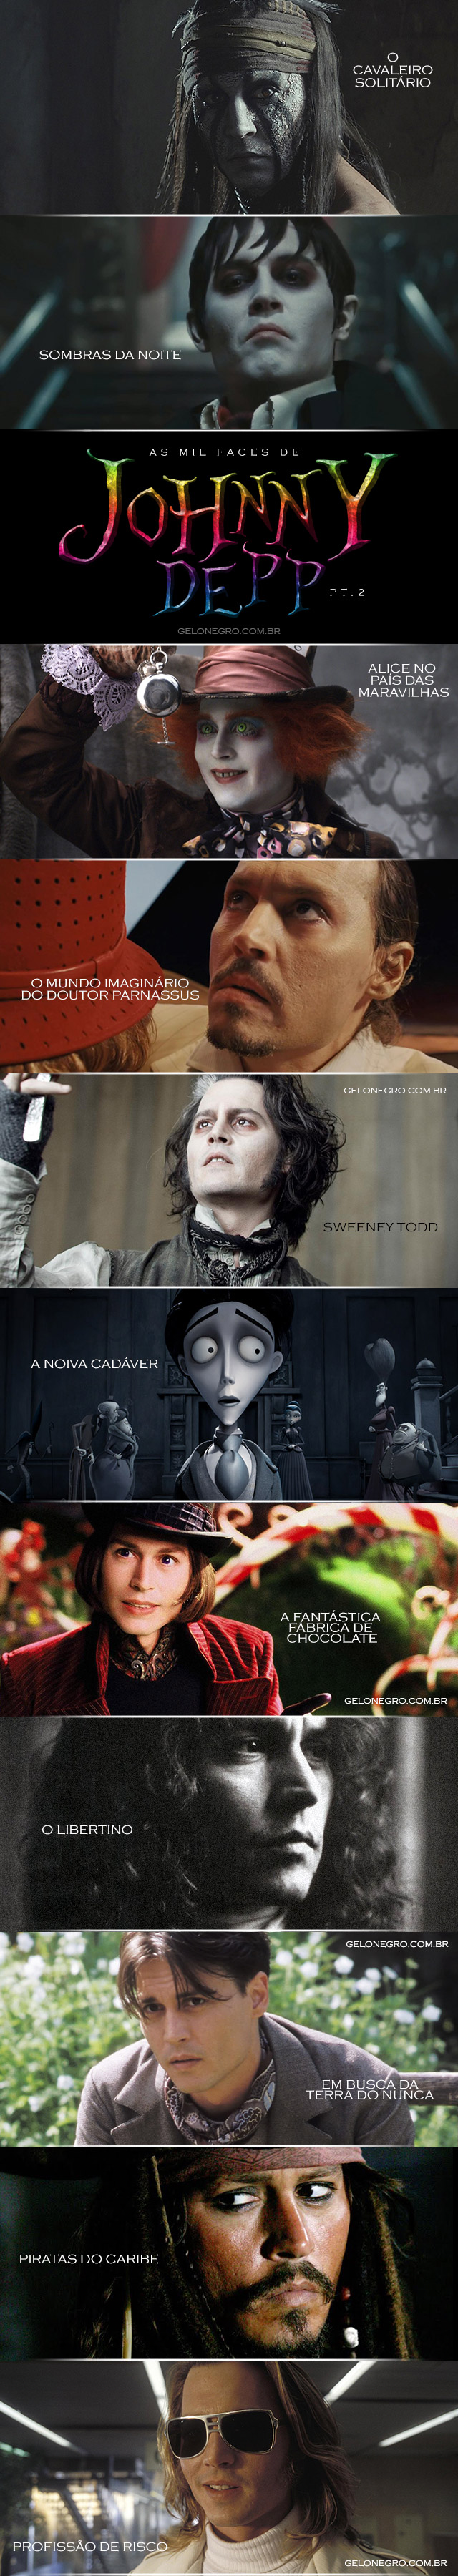 as-mil-faces-johnny-depp-pt2